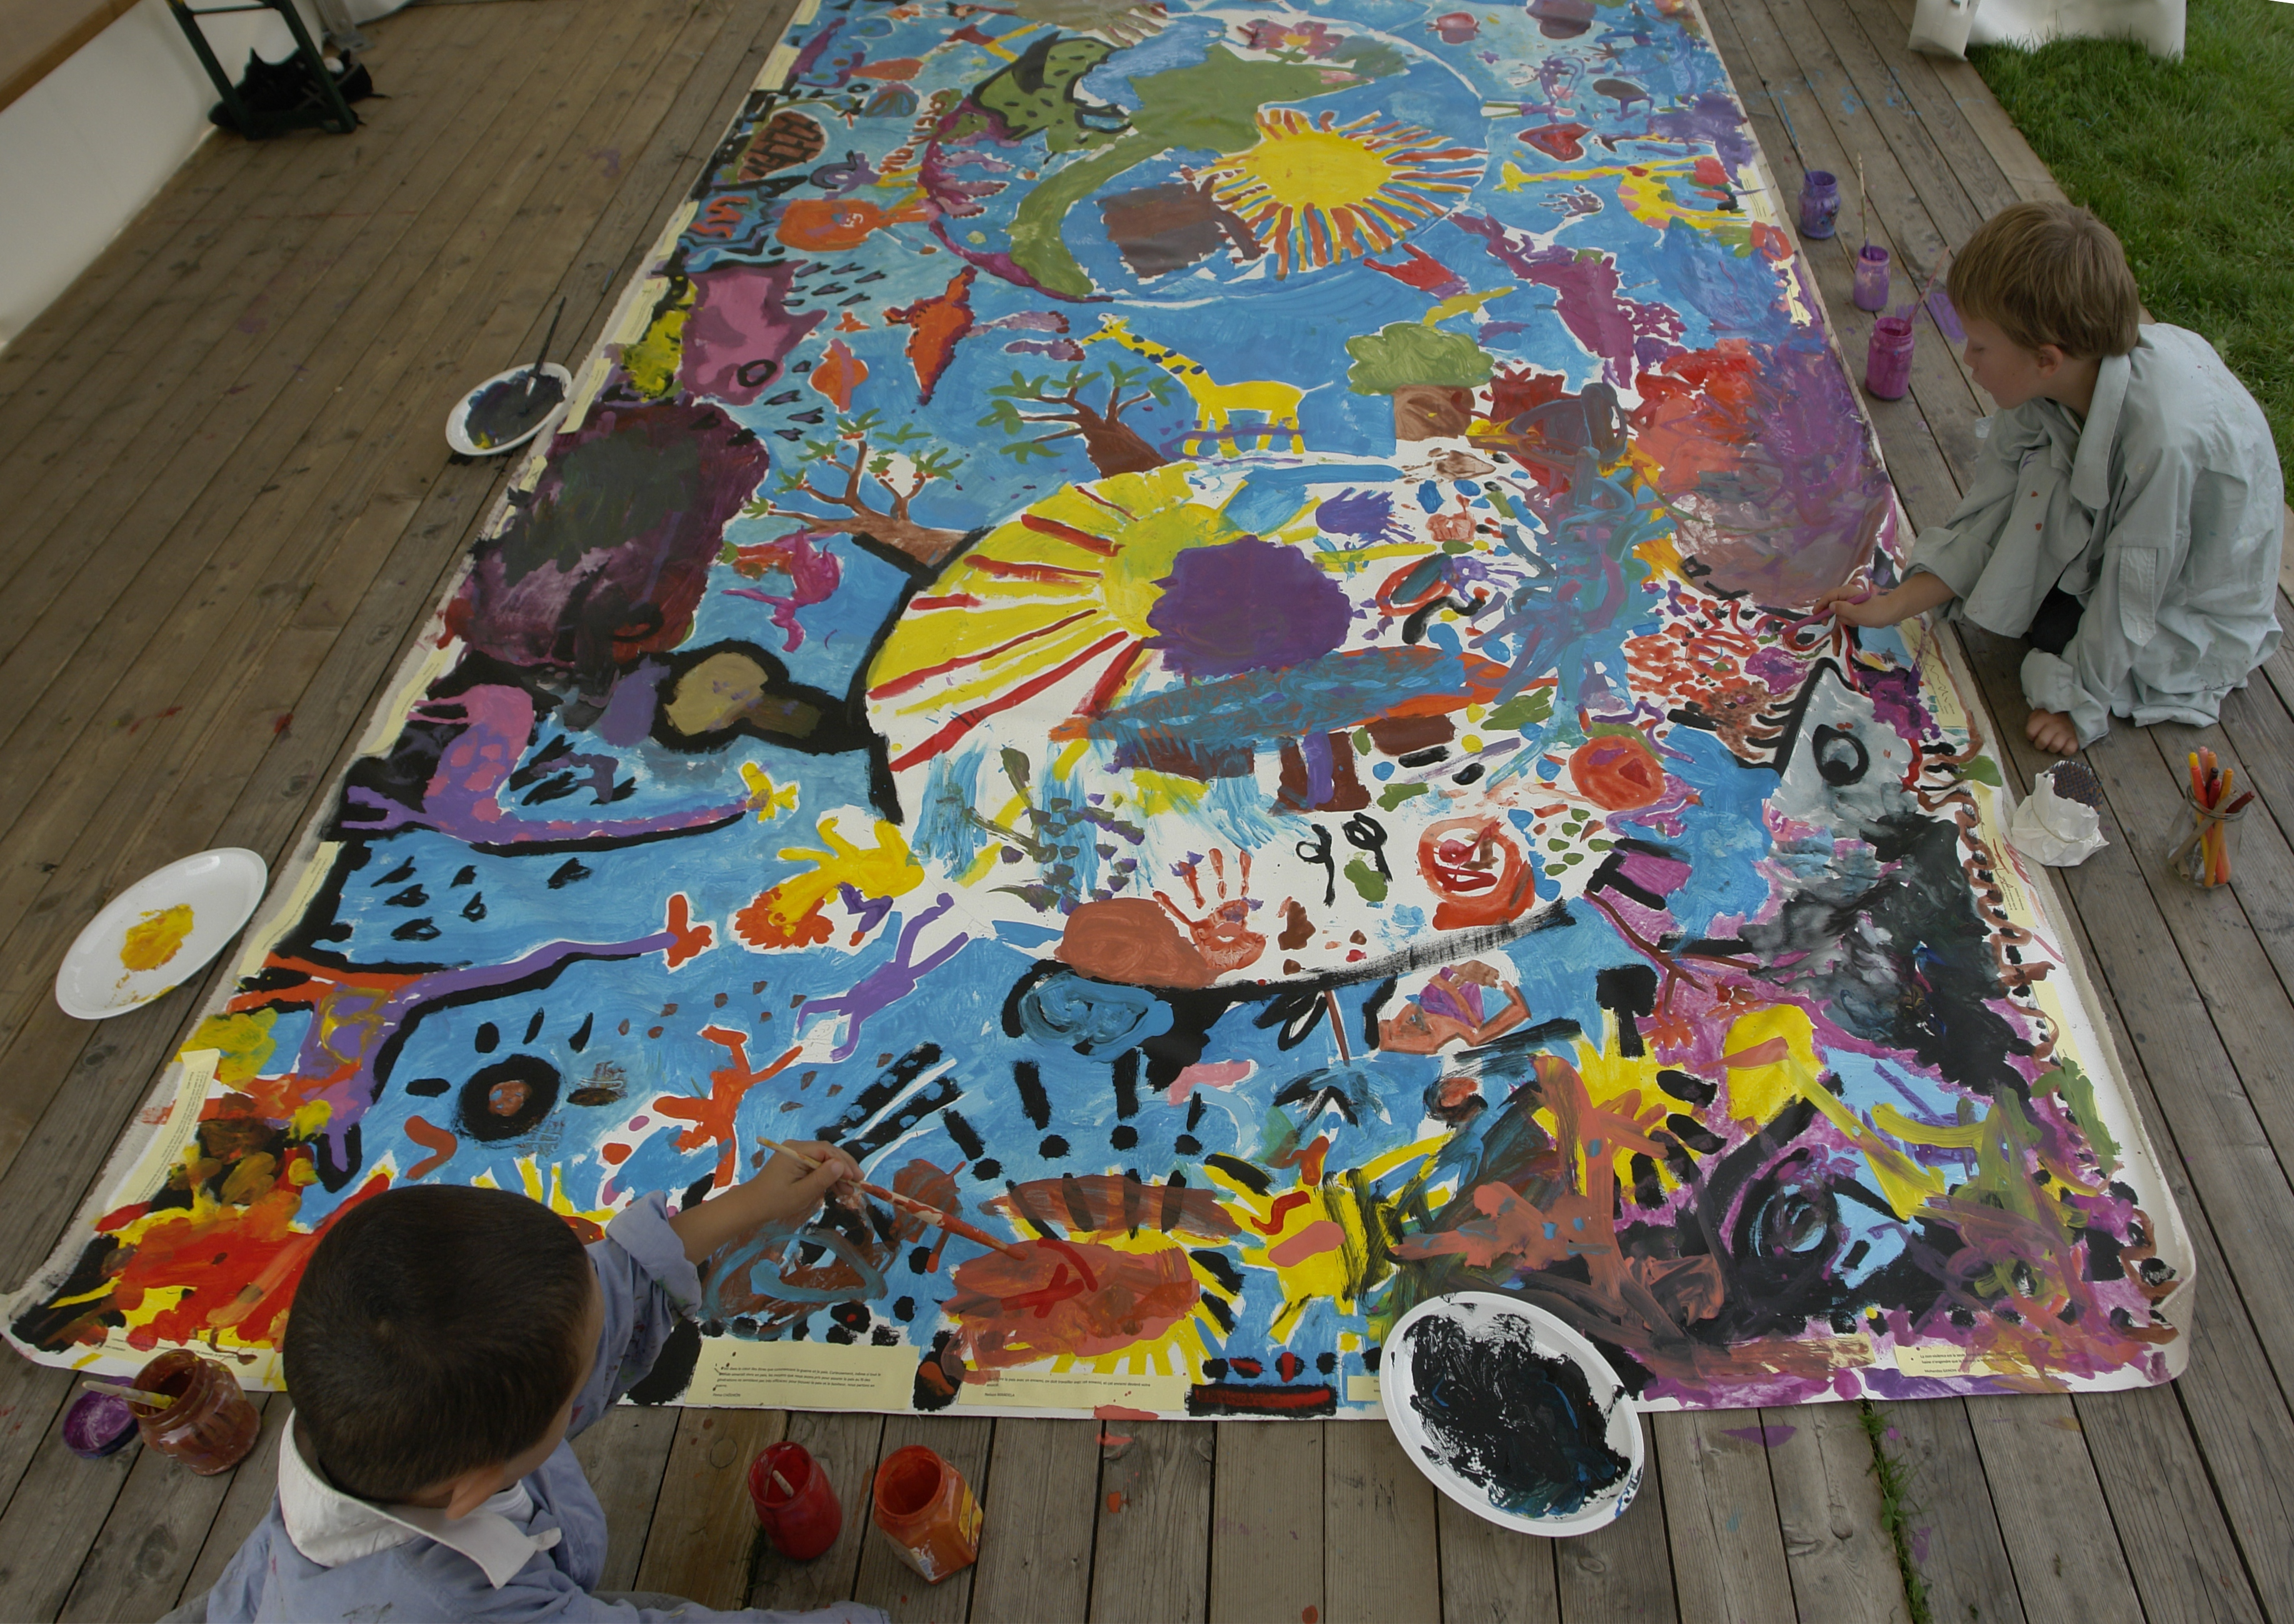 Mural Painting Materials Used